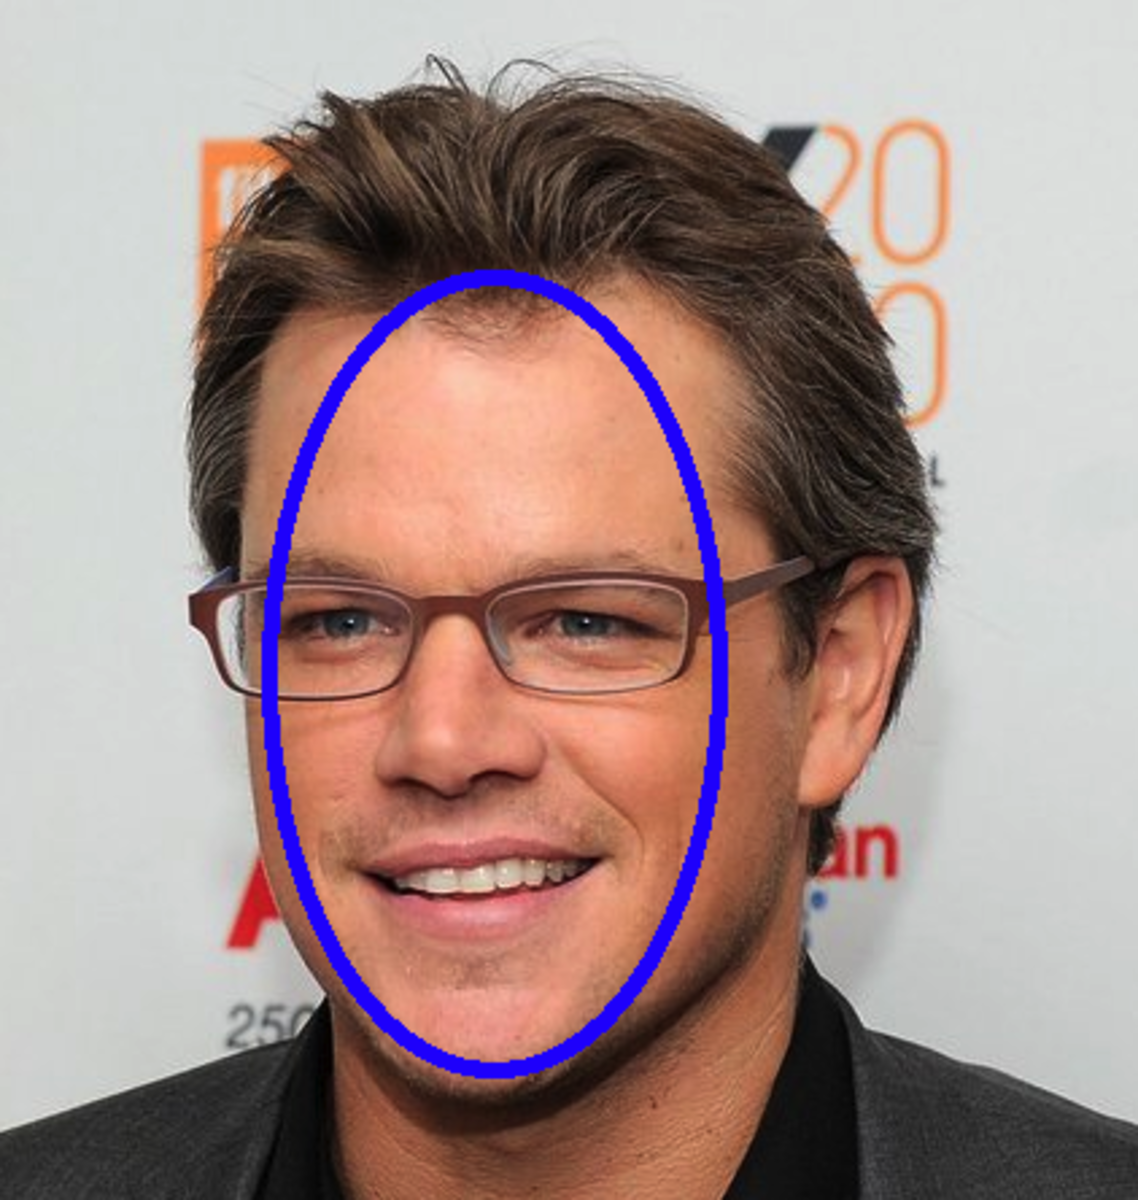 Oval-faced Matt Damon can look good in anything